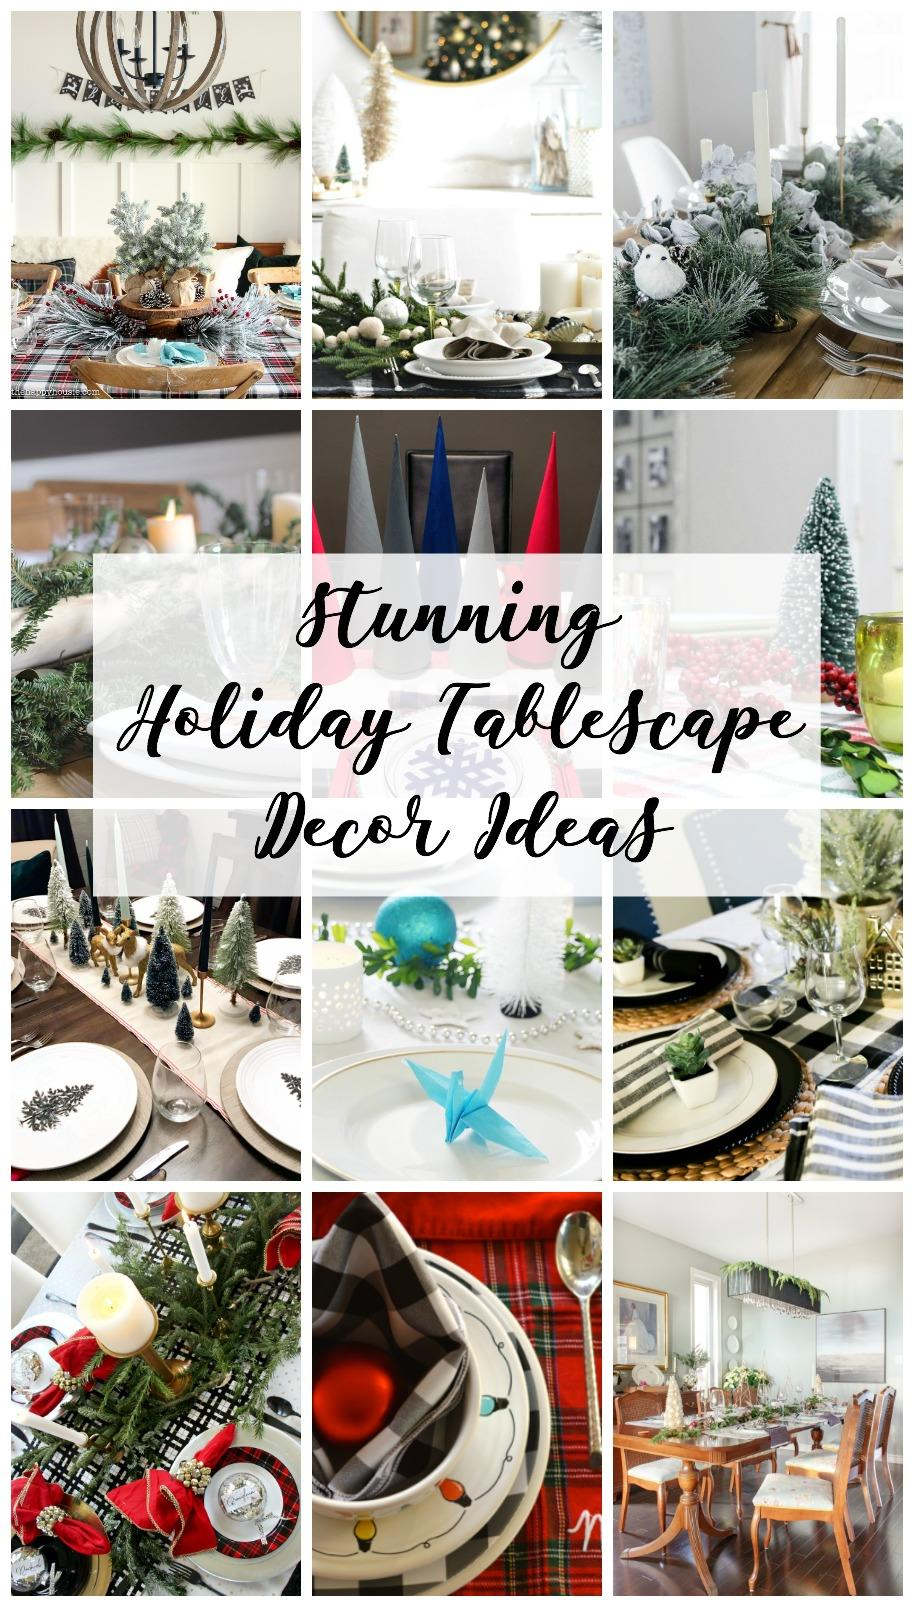 Stunning holiday tablescape decor ideas - lots of inspiration for your Christmas table